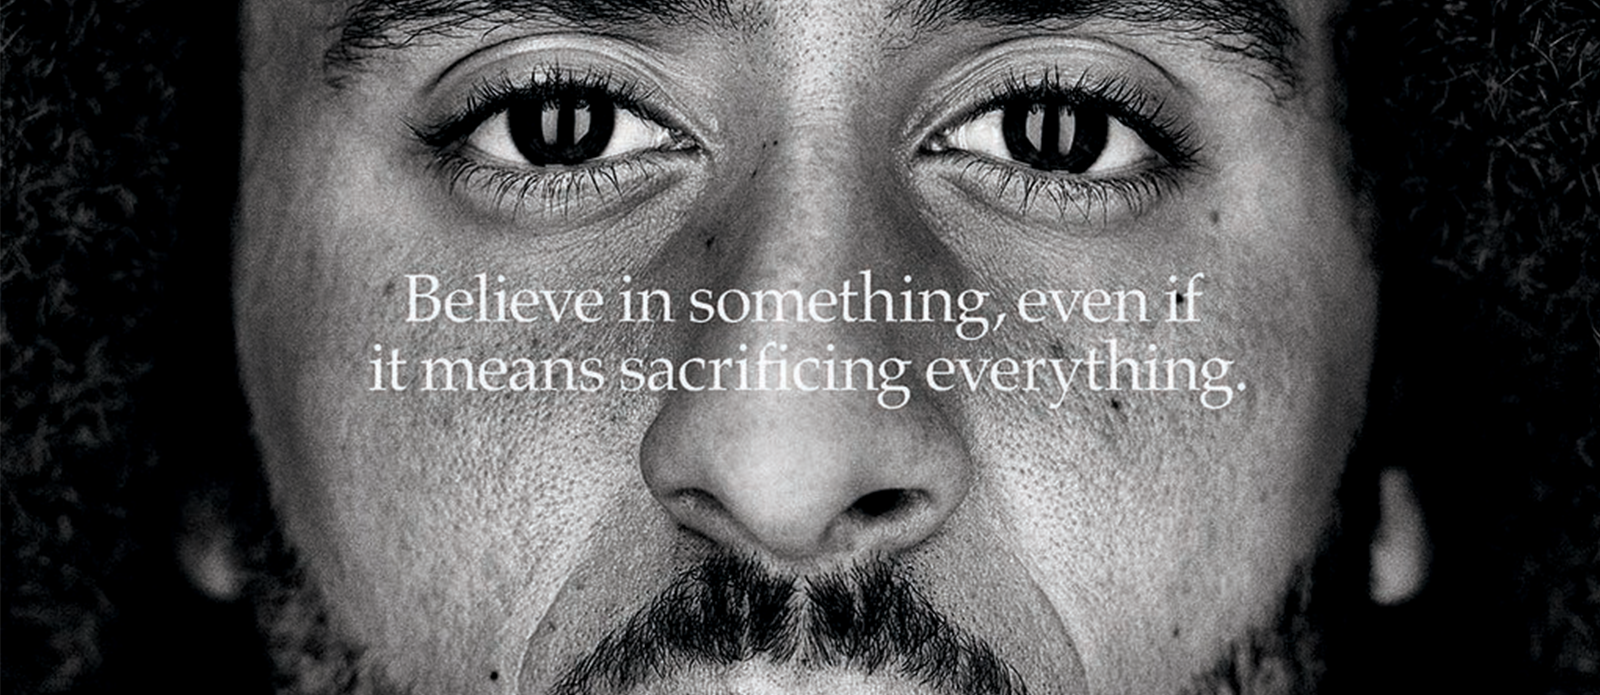 Nike's outrage marketing campaign featuring Colin Kaepernick drove profits and fans wild.